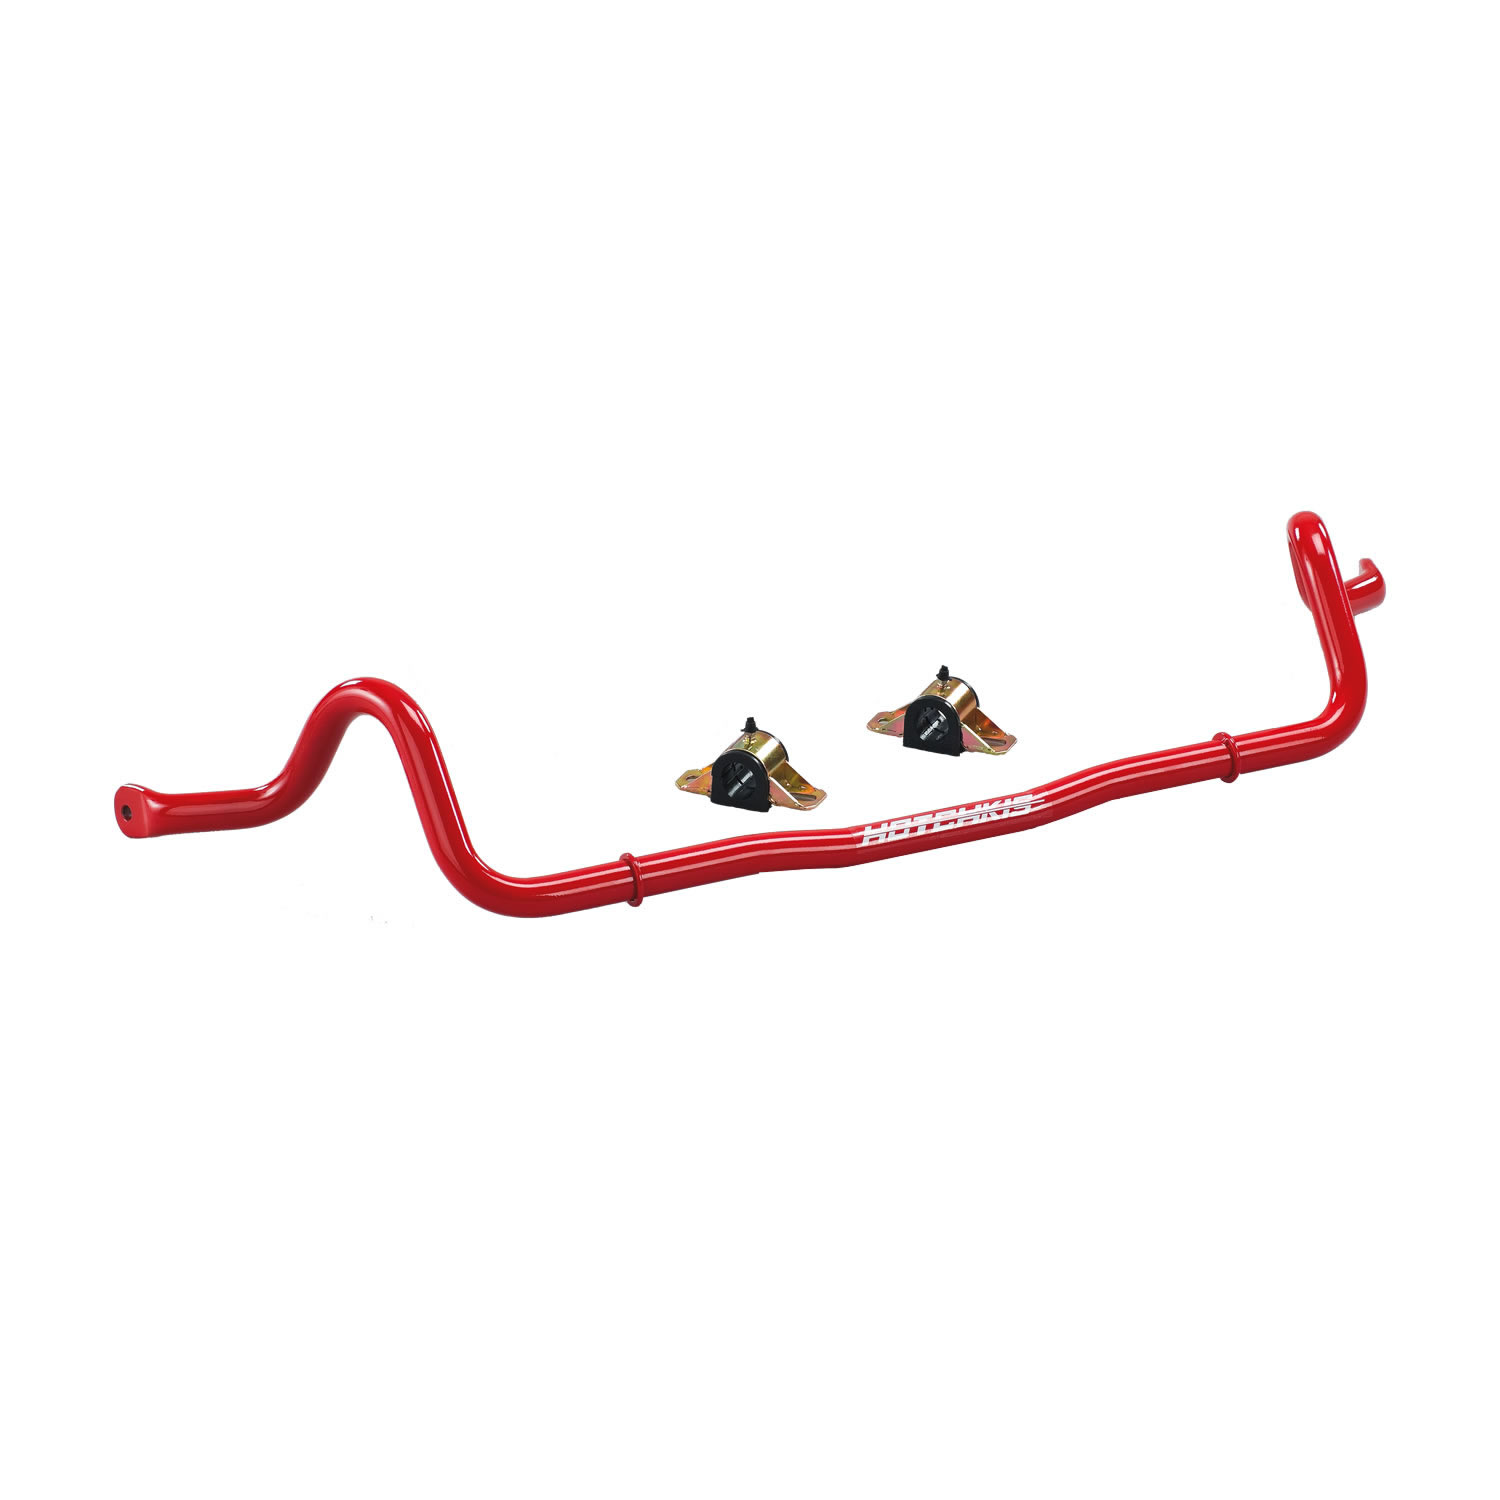 Mazda Speed 3 Front Sport Sway Bar from Hotchkis Sport Suspension